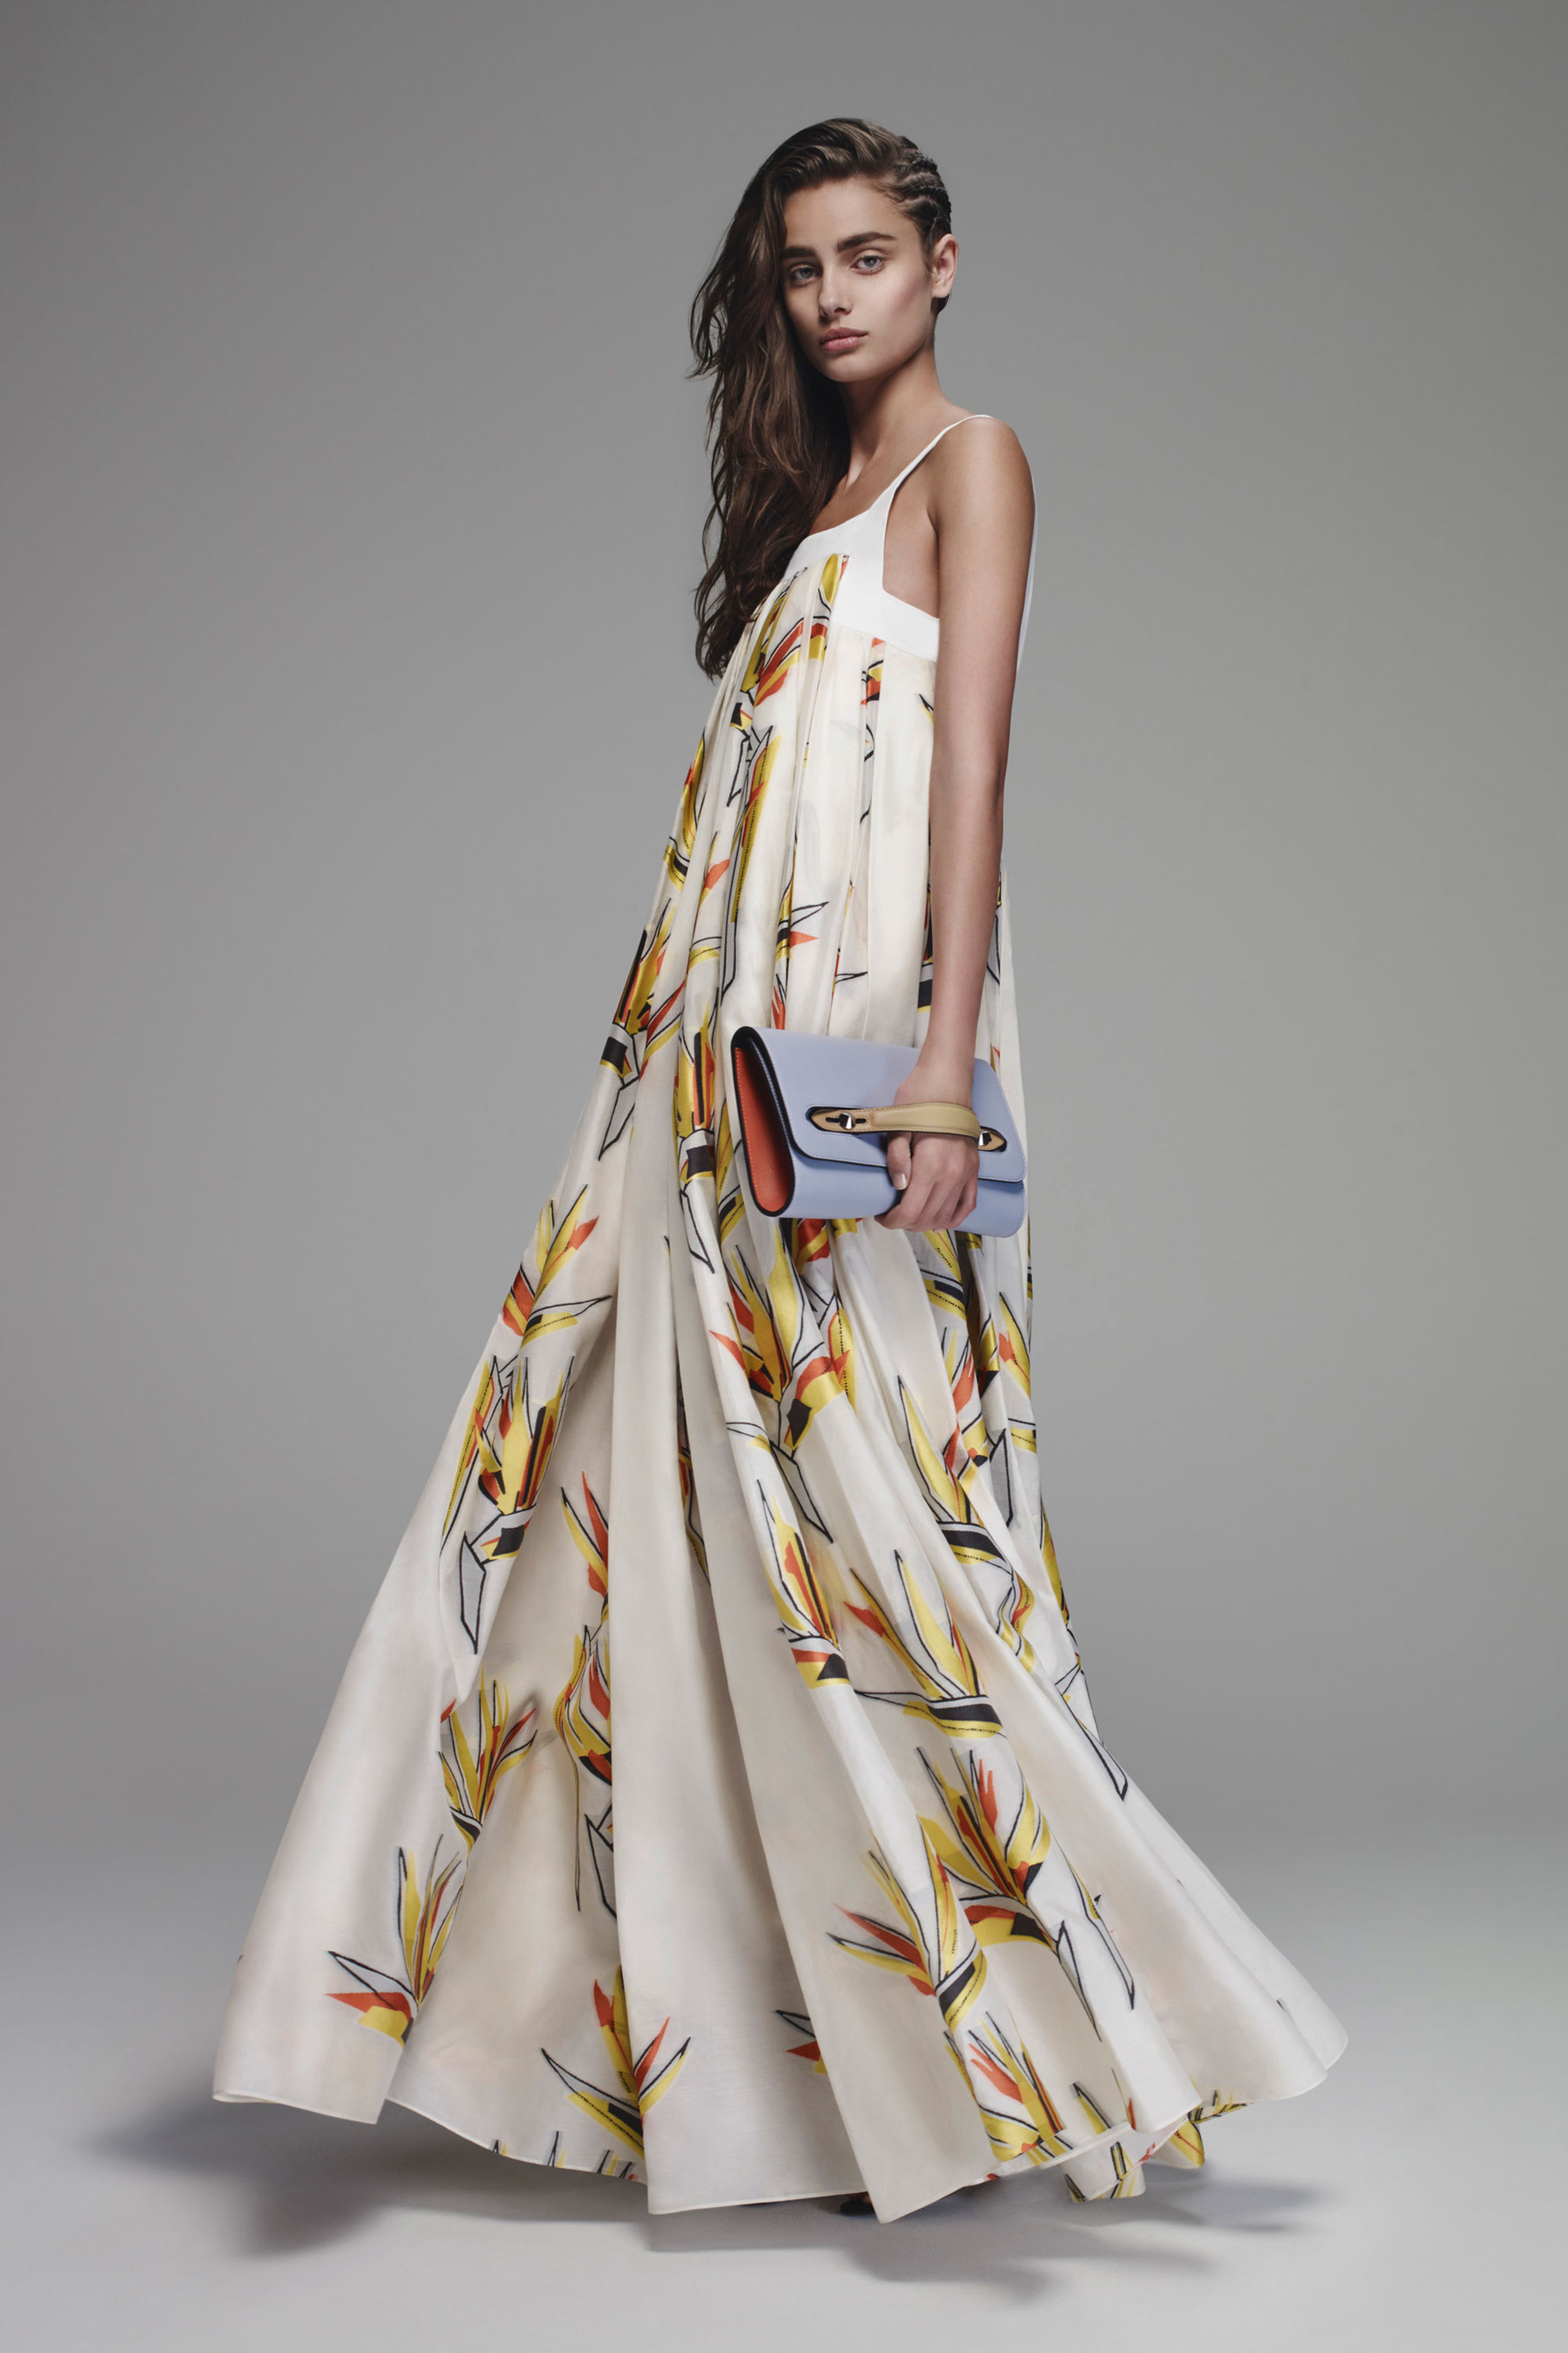 Fendi 2016 resort collection 2